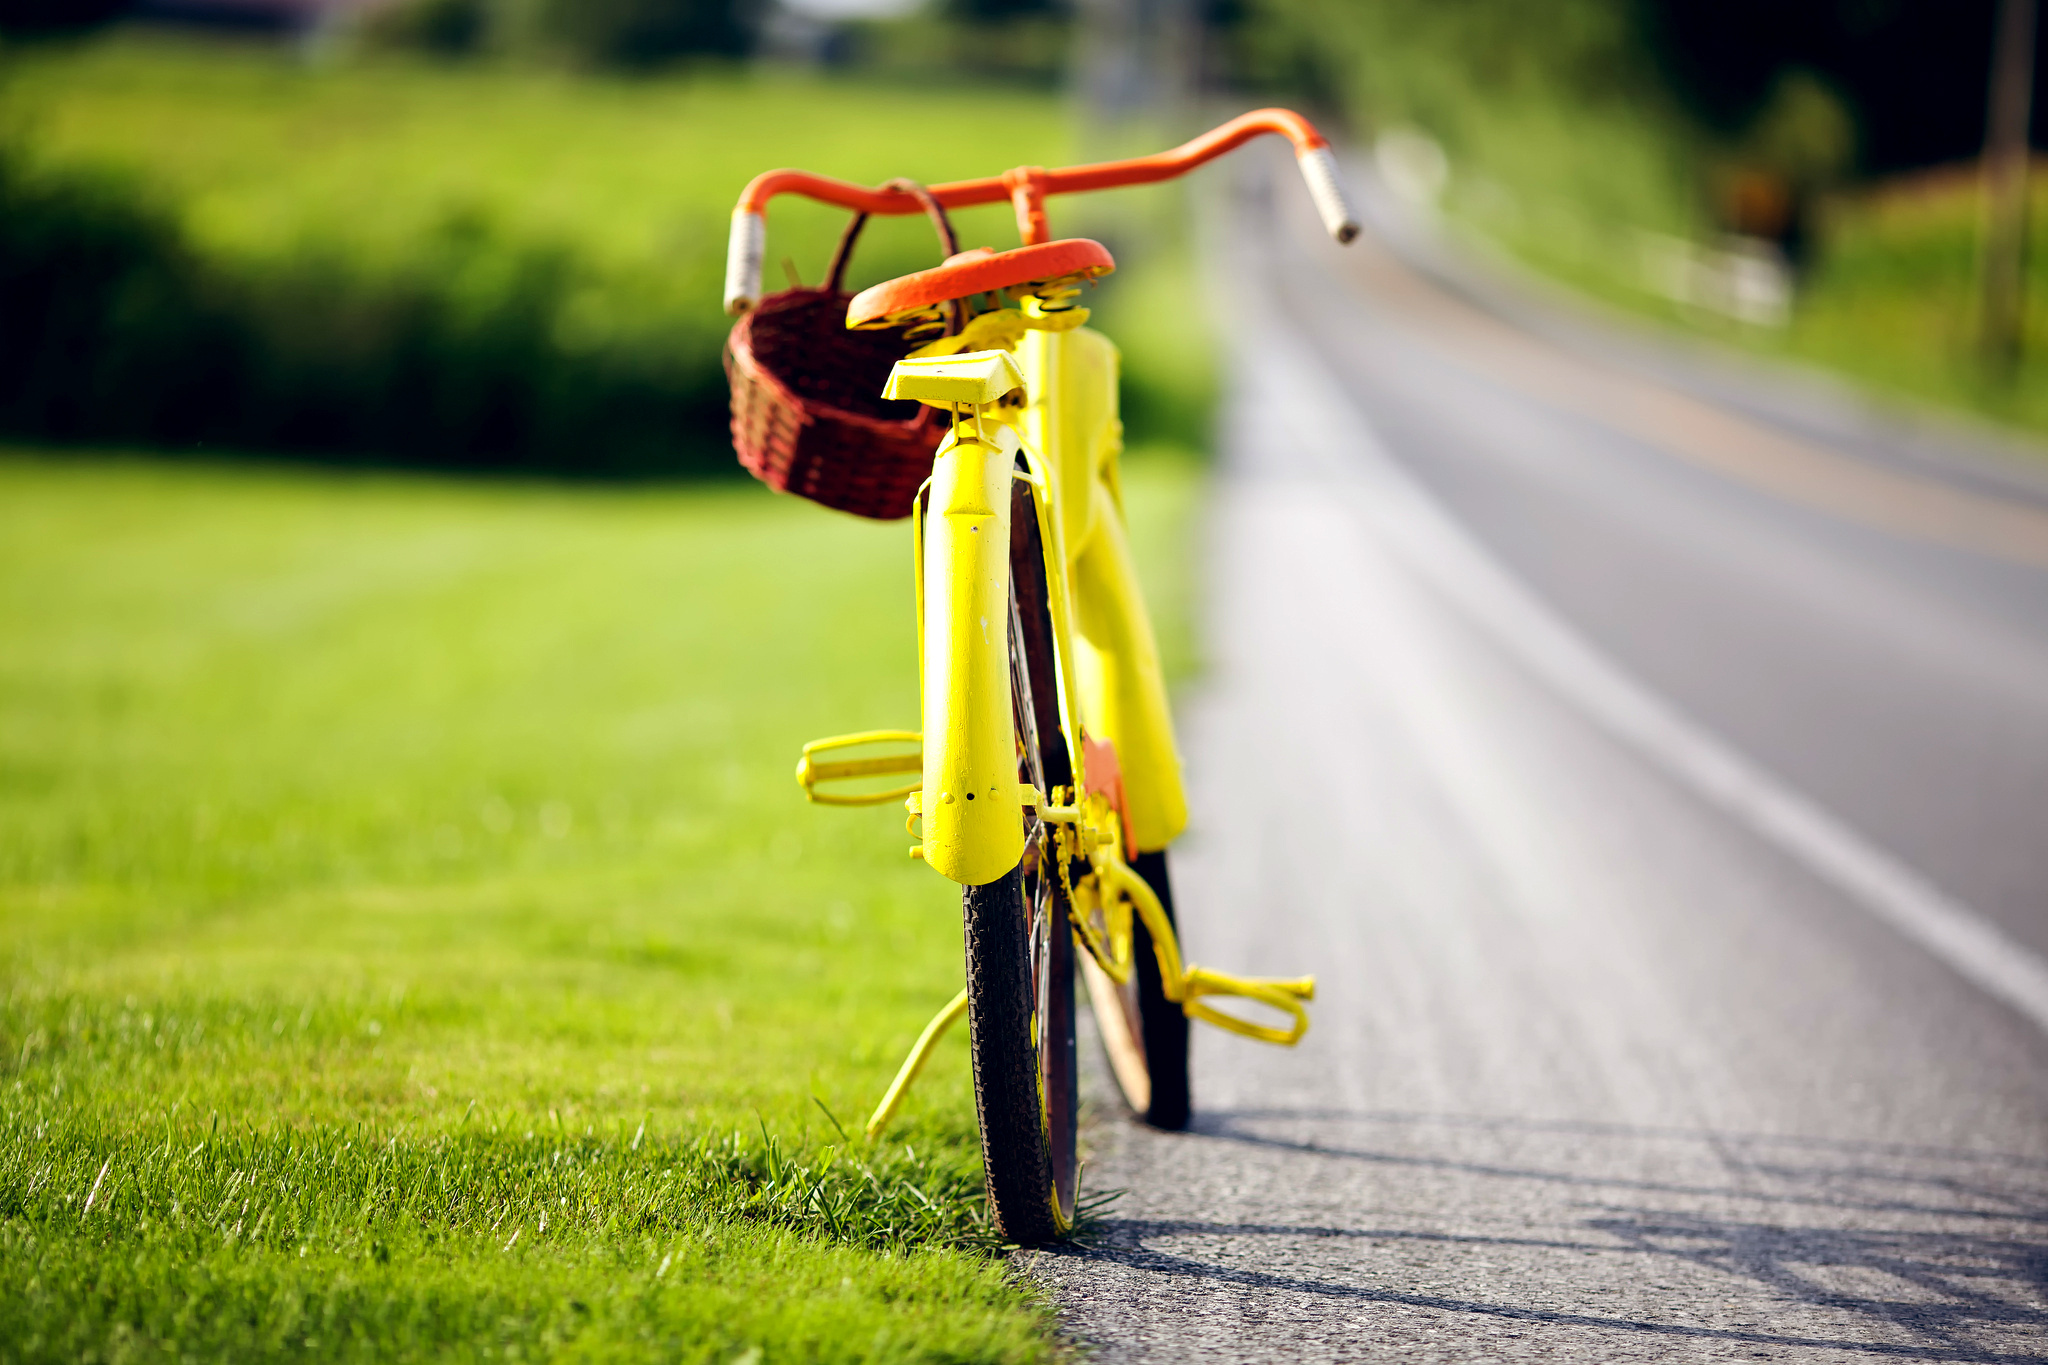 bicycle-photography-hd-wallpaper